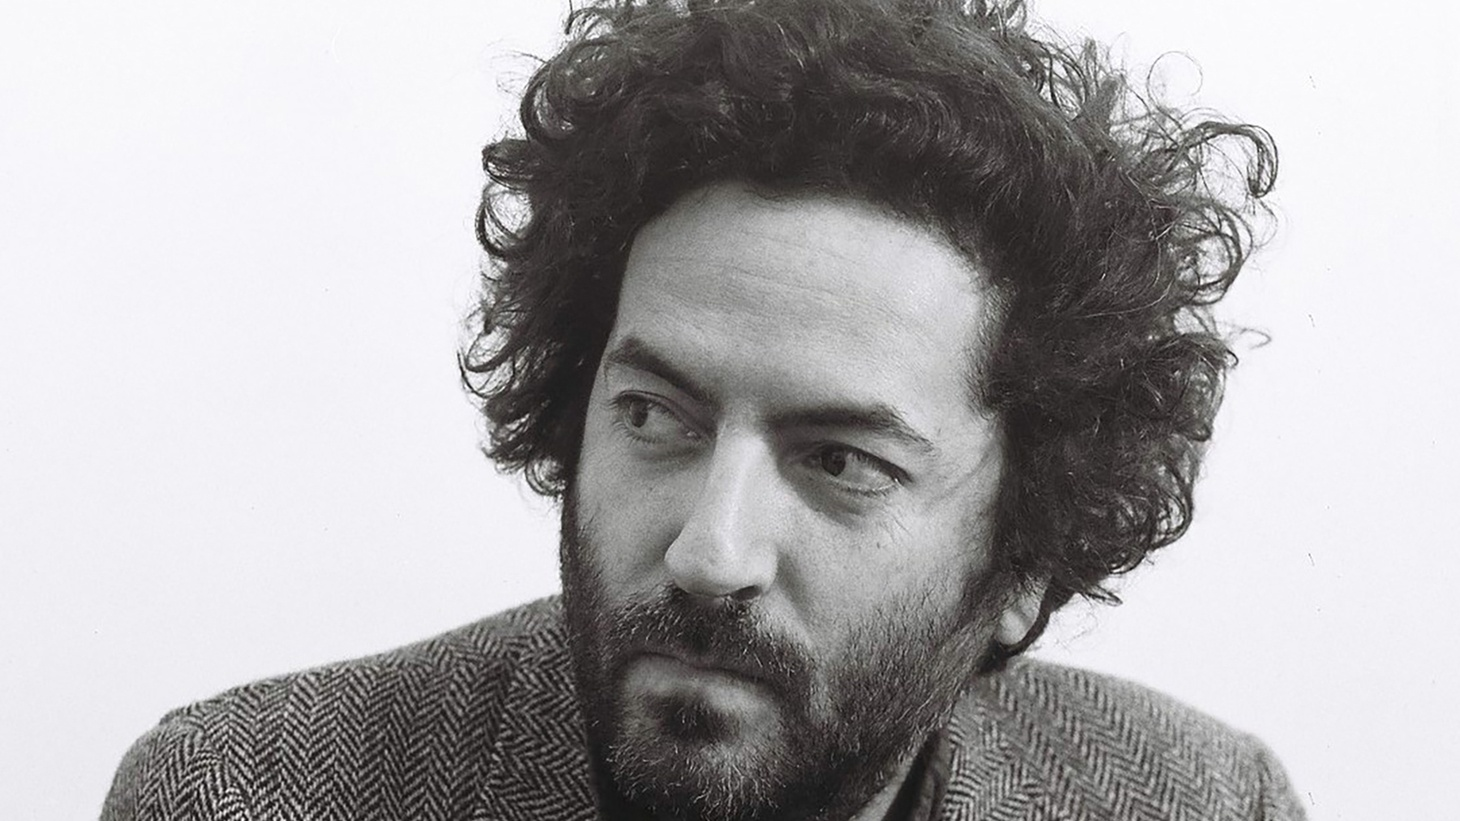 Dan Bejar of the New Pornographers is Destroyer. A chameleon at heart, his next album due in late summer runs the gamut of sounds.